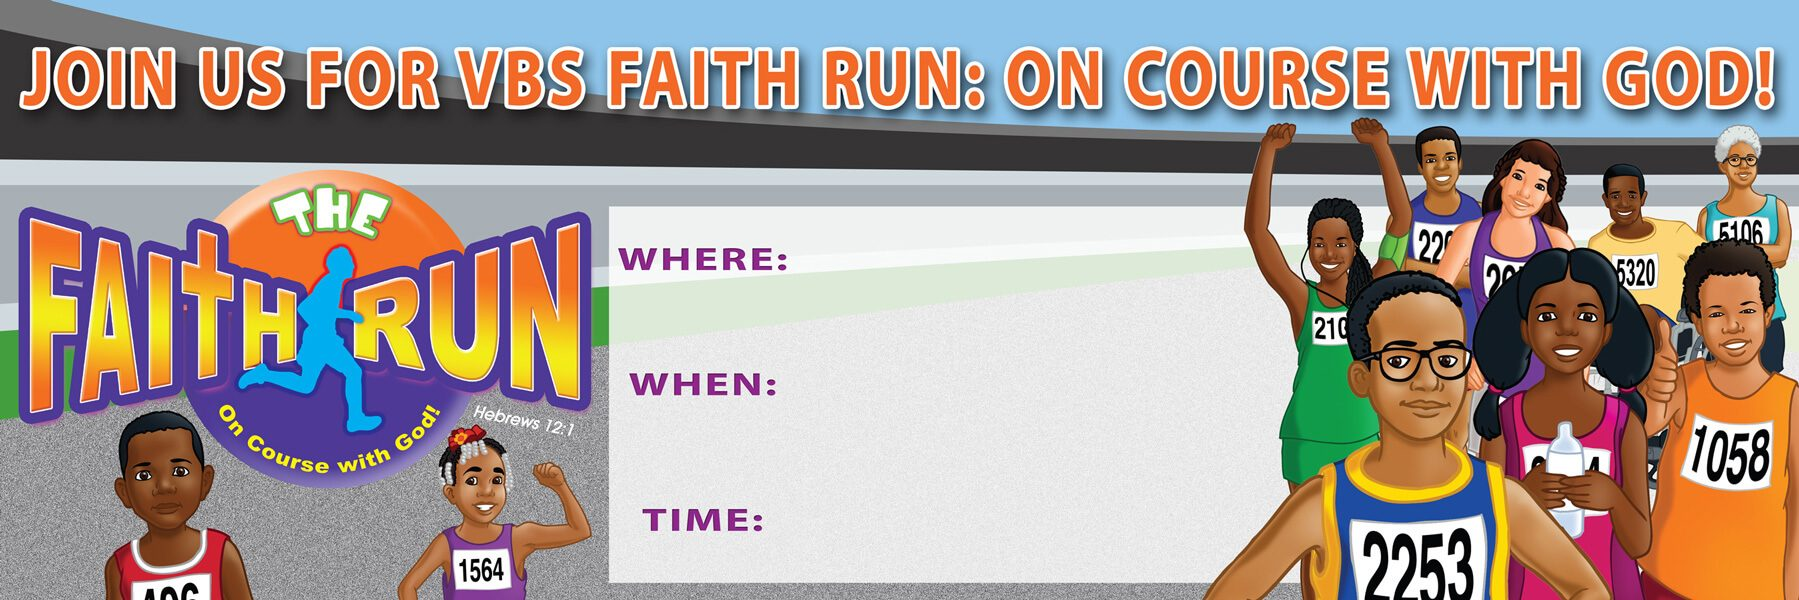 VBS The Faith Run Outdoor Vinyl Banner